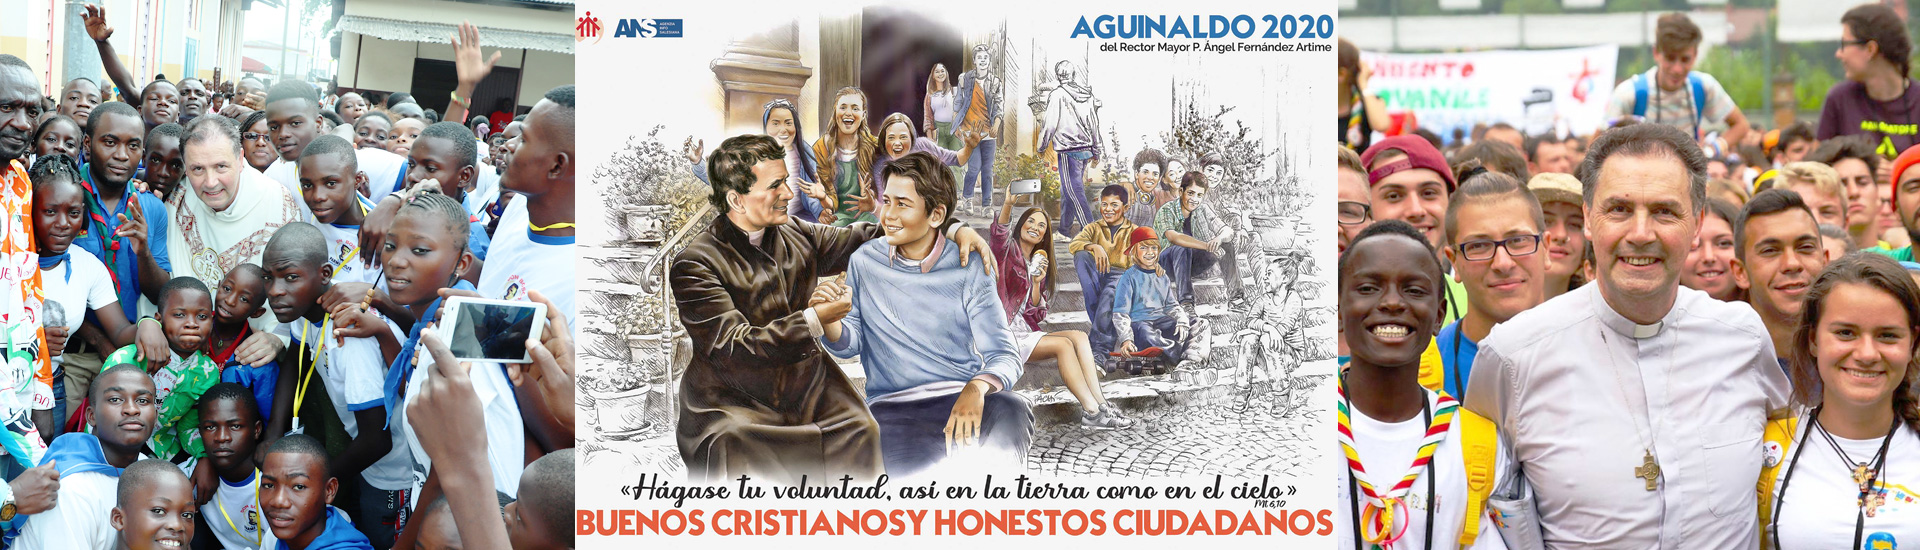 El cartel del Aguinaldo 2020 del Rector Mayor describe la esencia salesiana